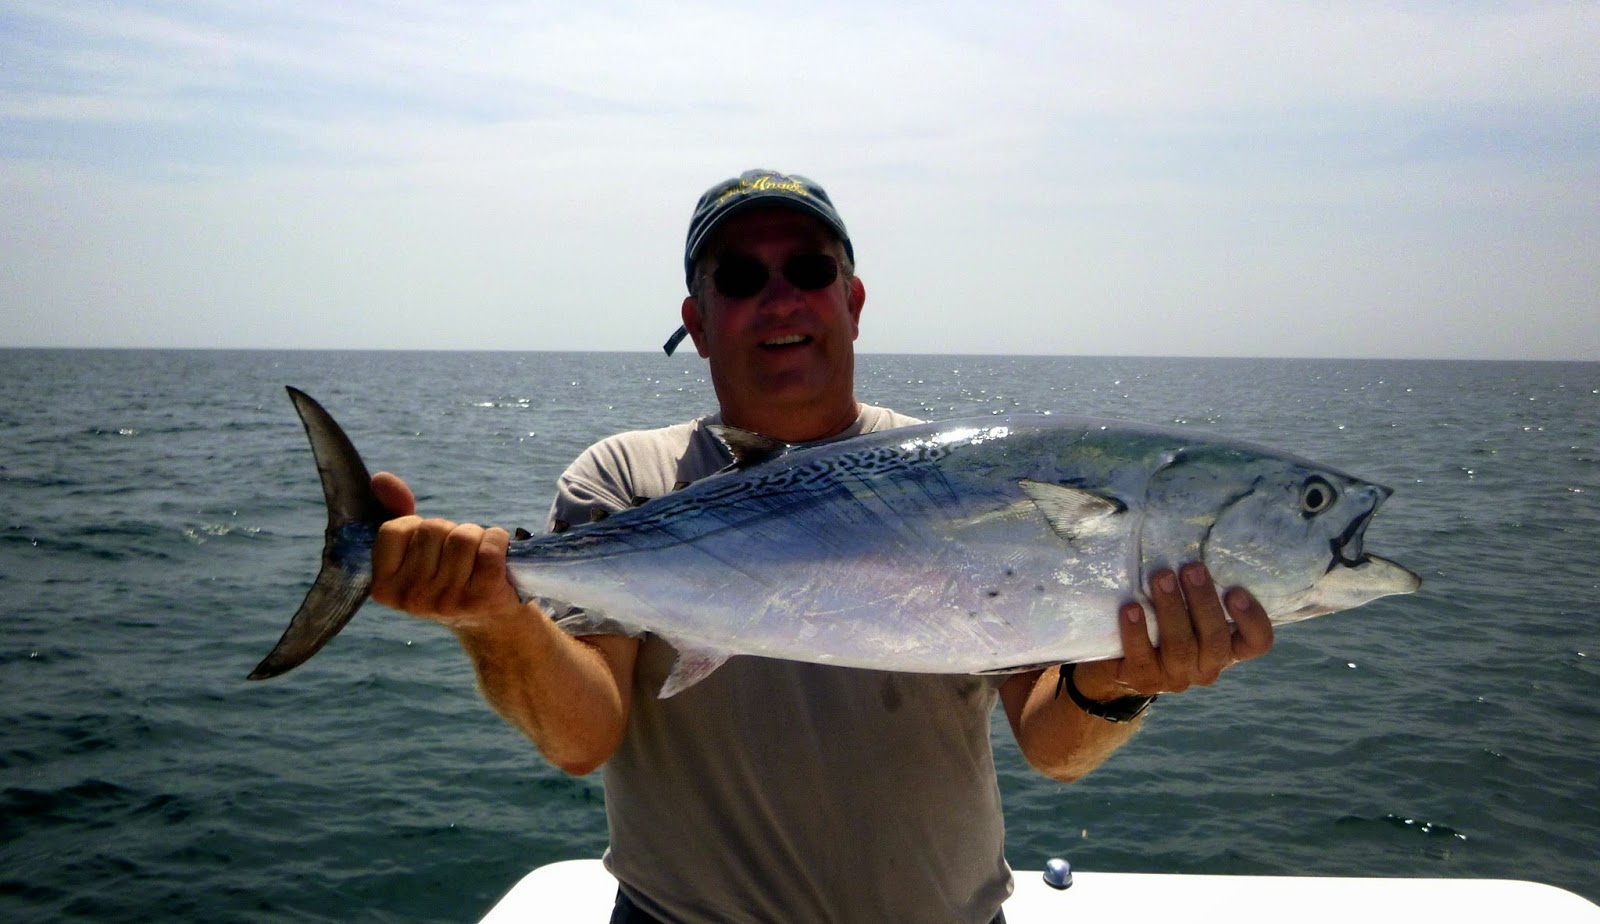 Top water charters fishing reports and news beaufort for Fishing charters atlantic beach nc